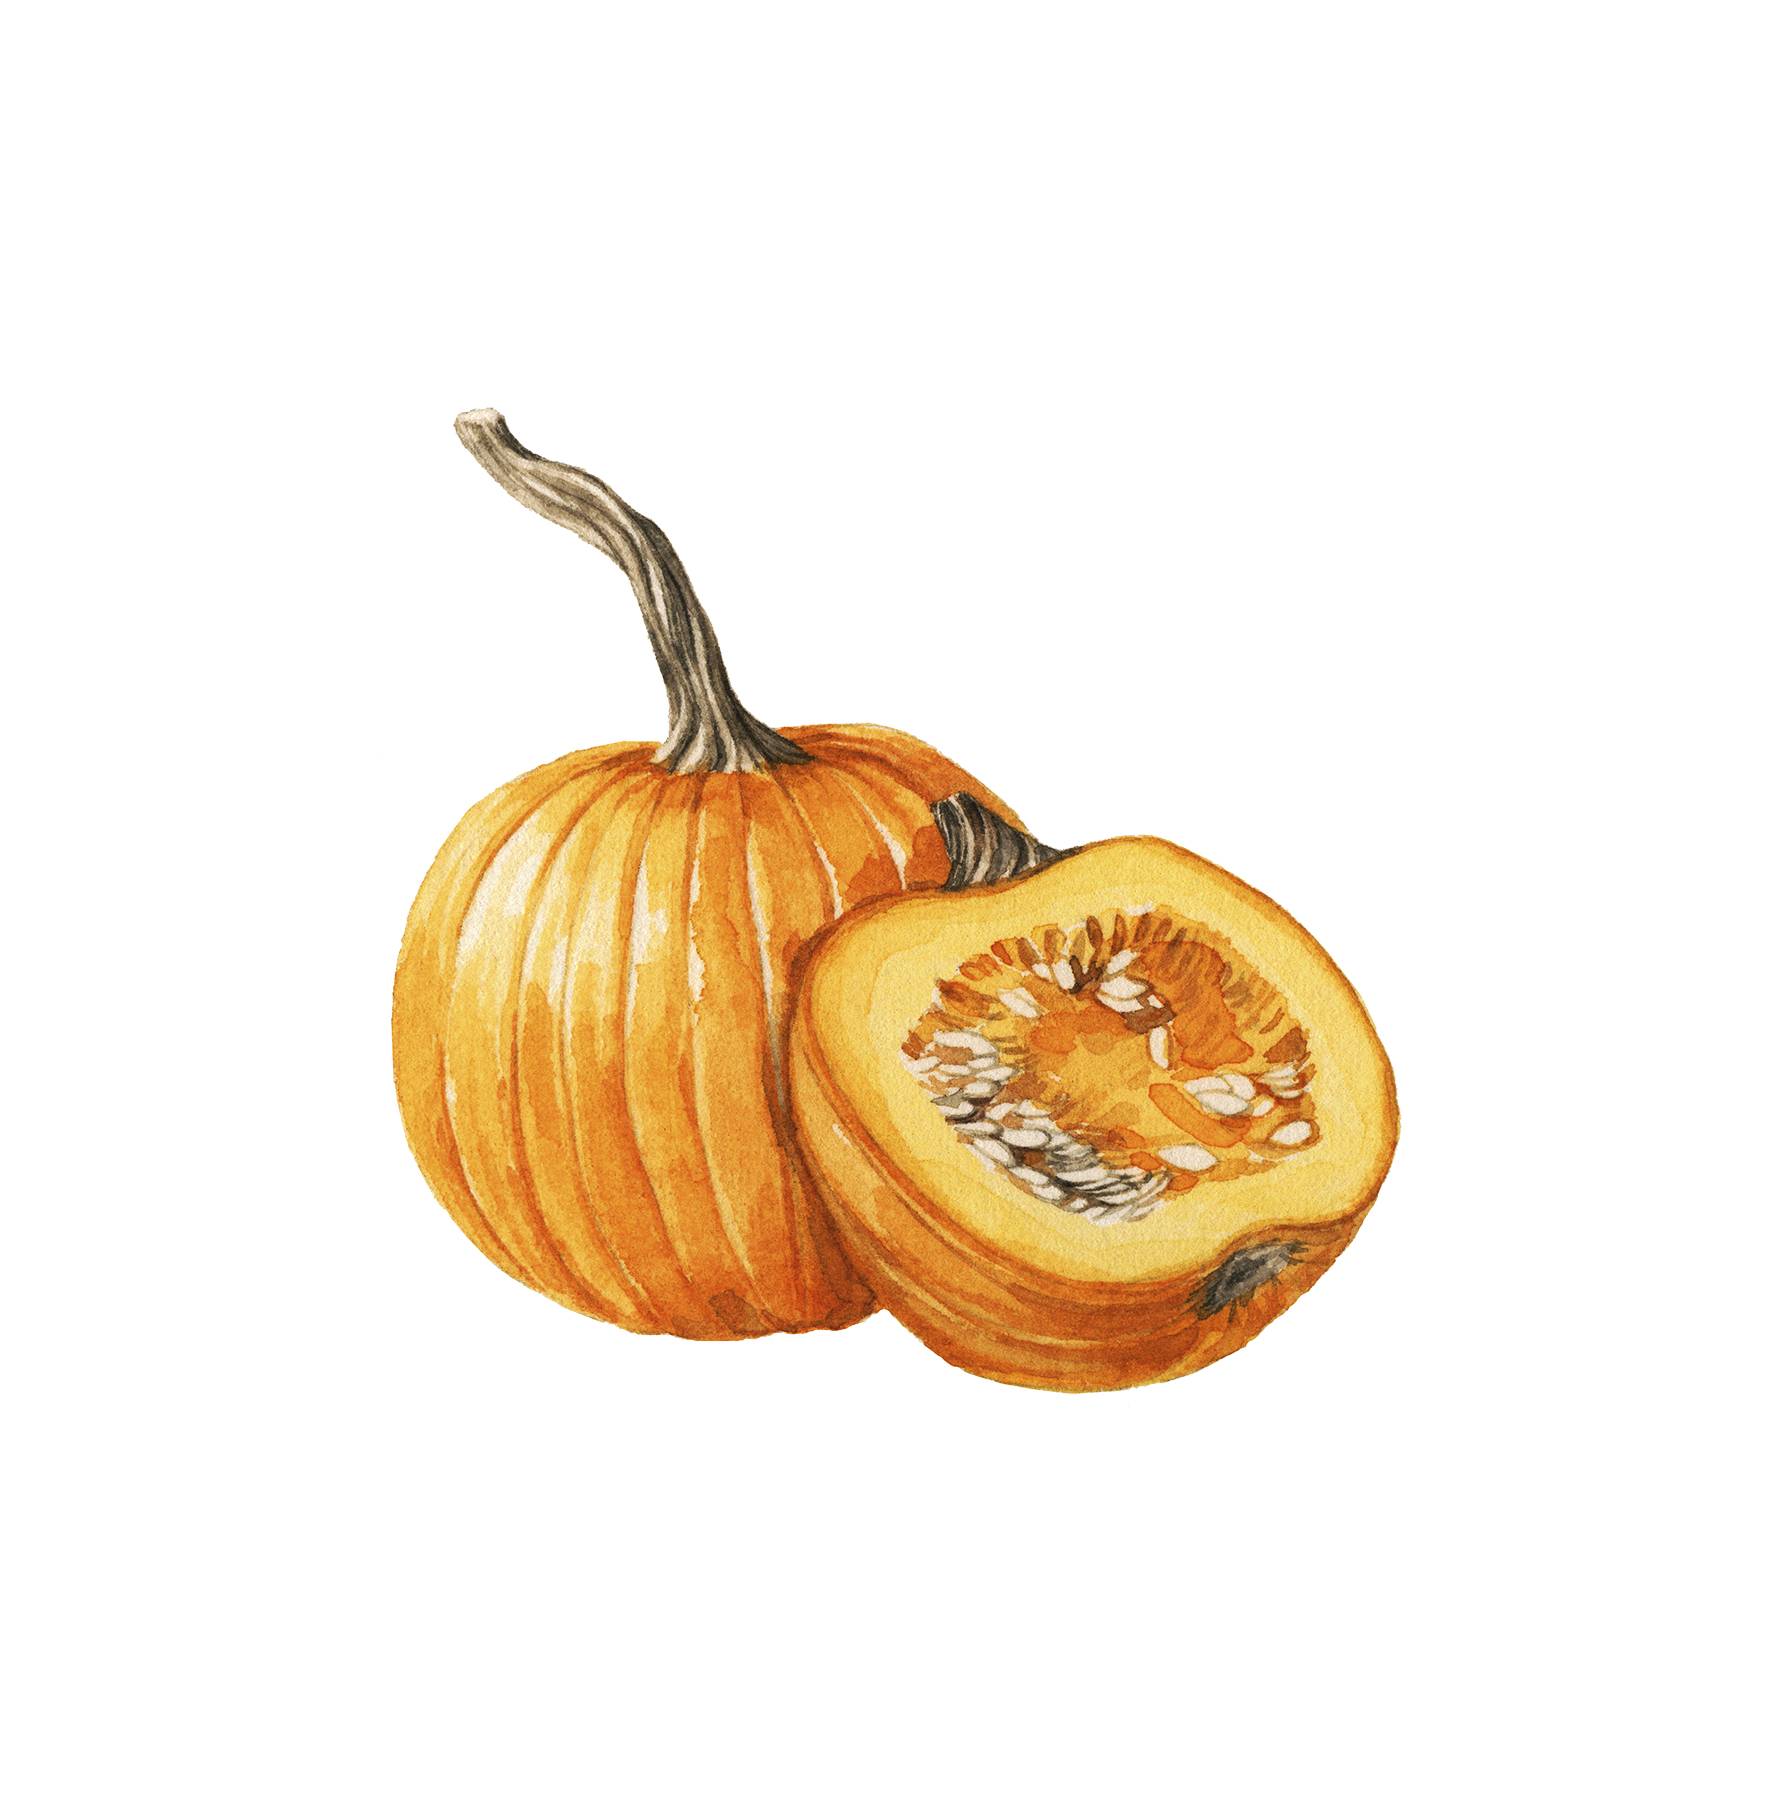 Illustration: pumpkin cut in half